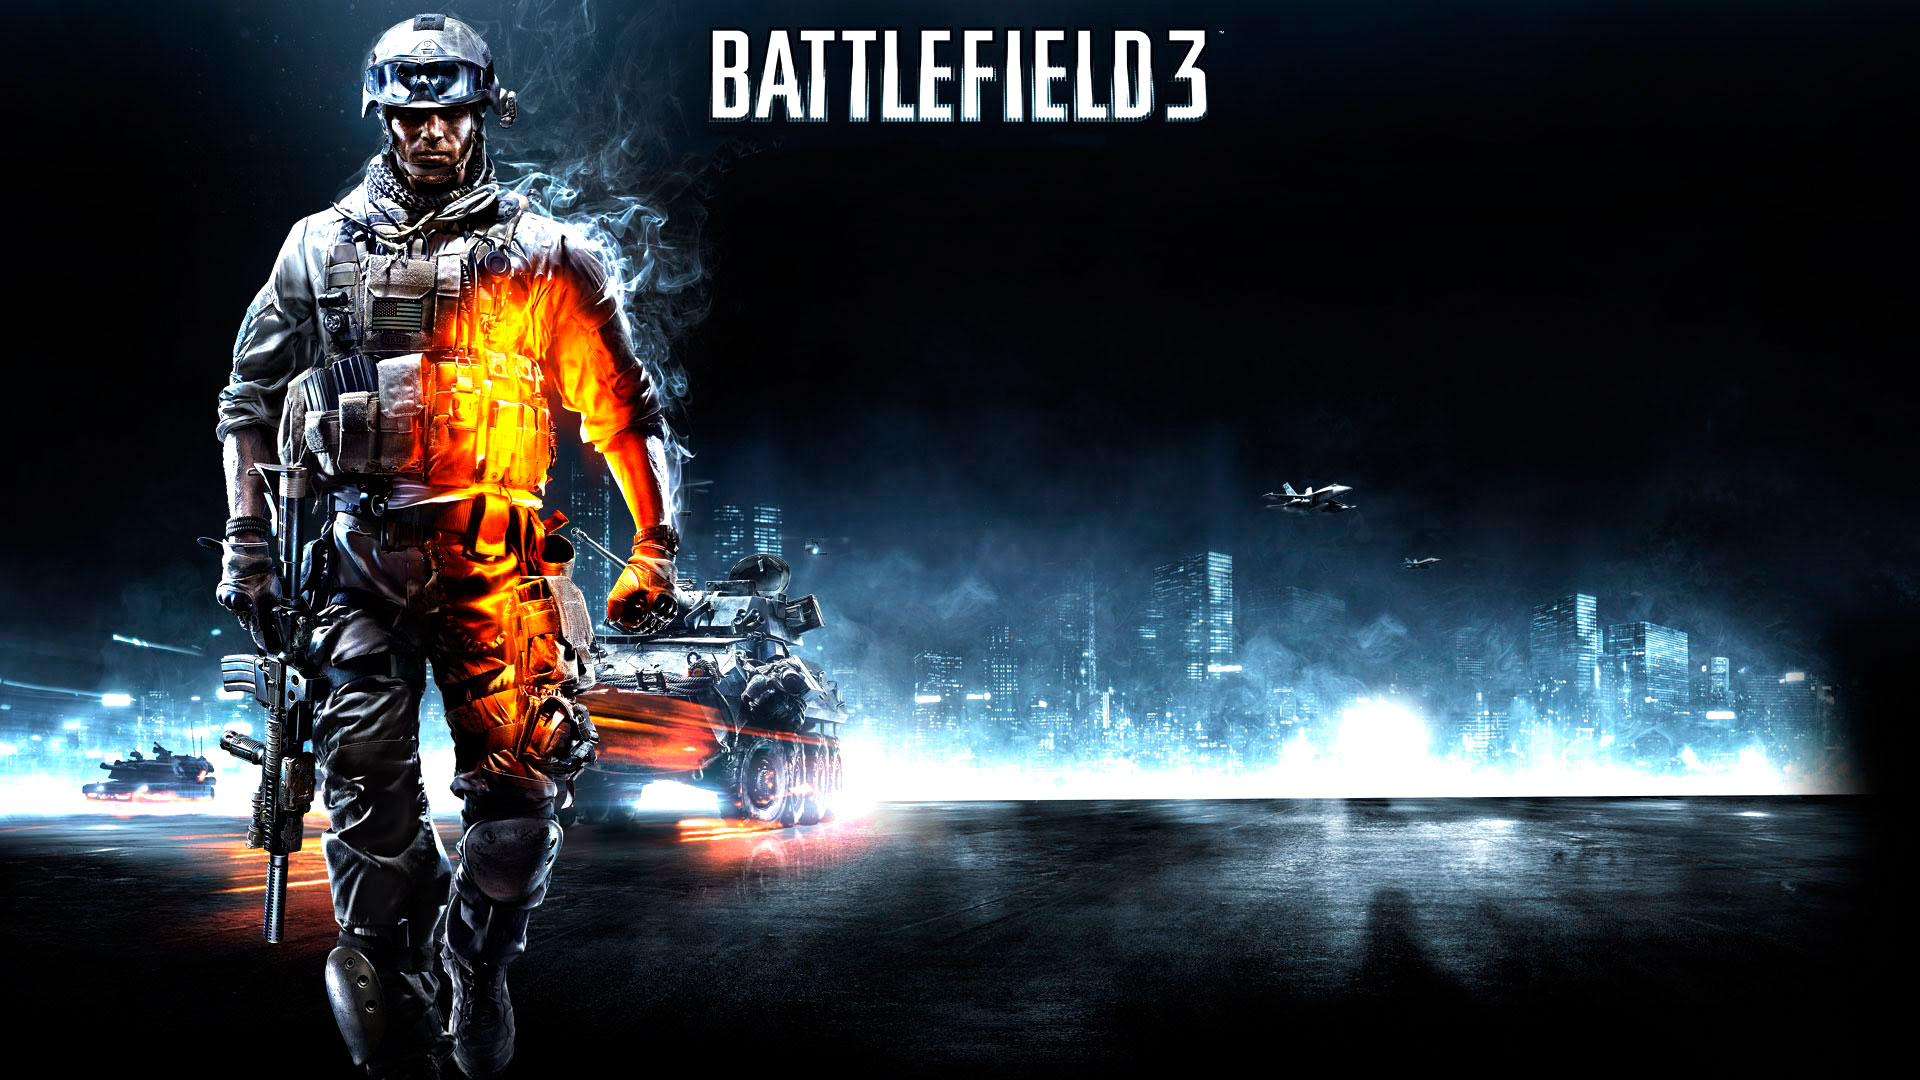 Battlefield 3 Wallpapers in HD High Resolution Page 5 1920x1080